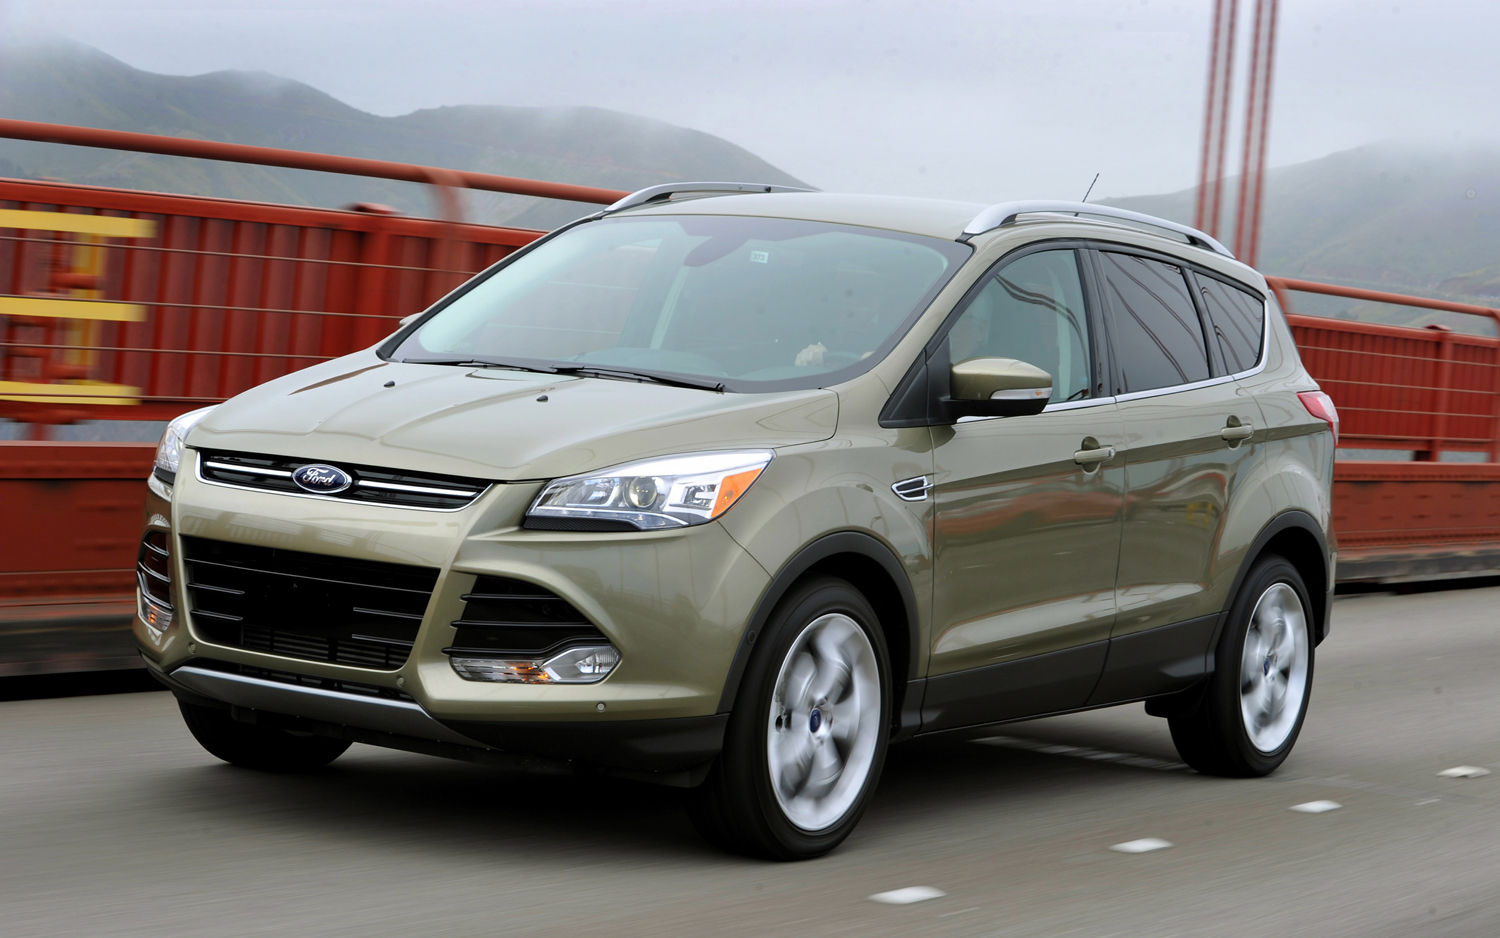 2013 ford escape ecoboost first drive motor trend rh motortrend com Ford Escape Owner's Manual 2013 ford escape owners manual pdf